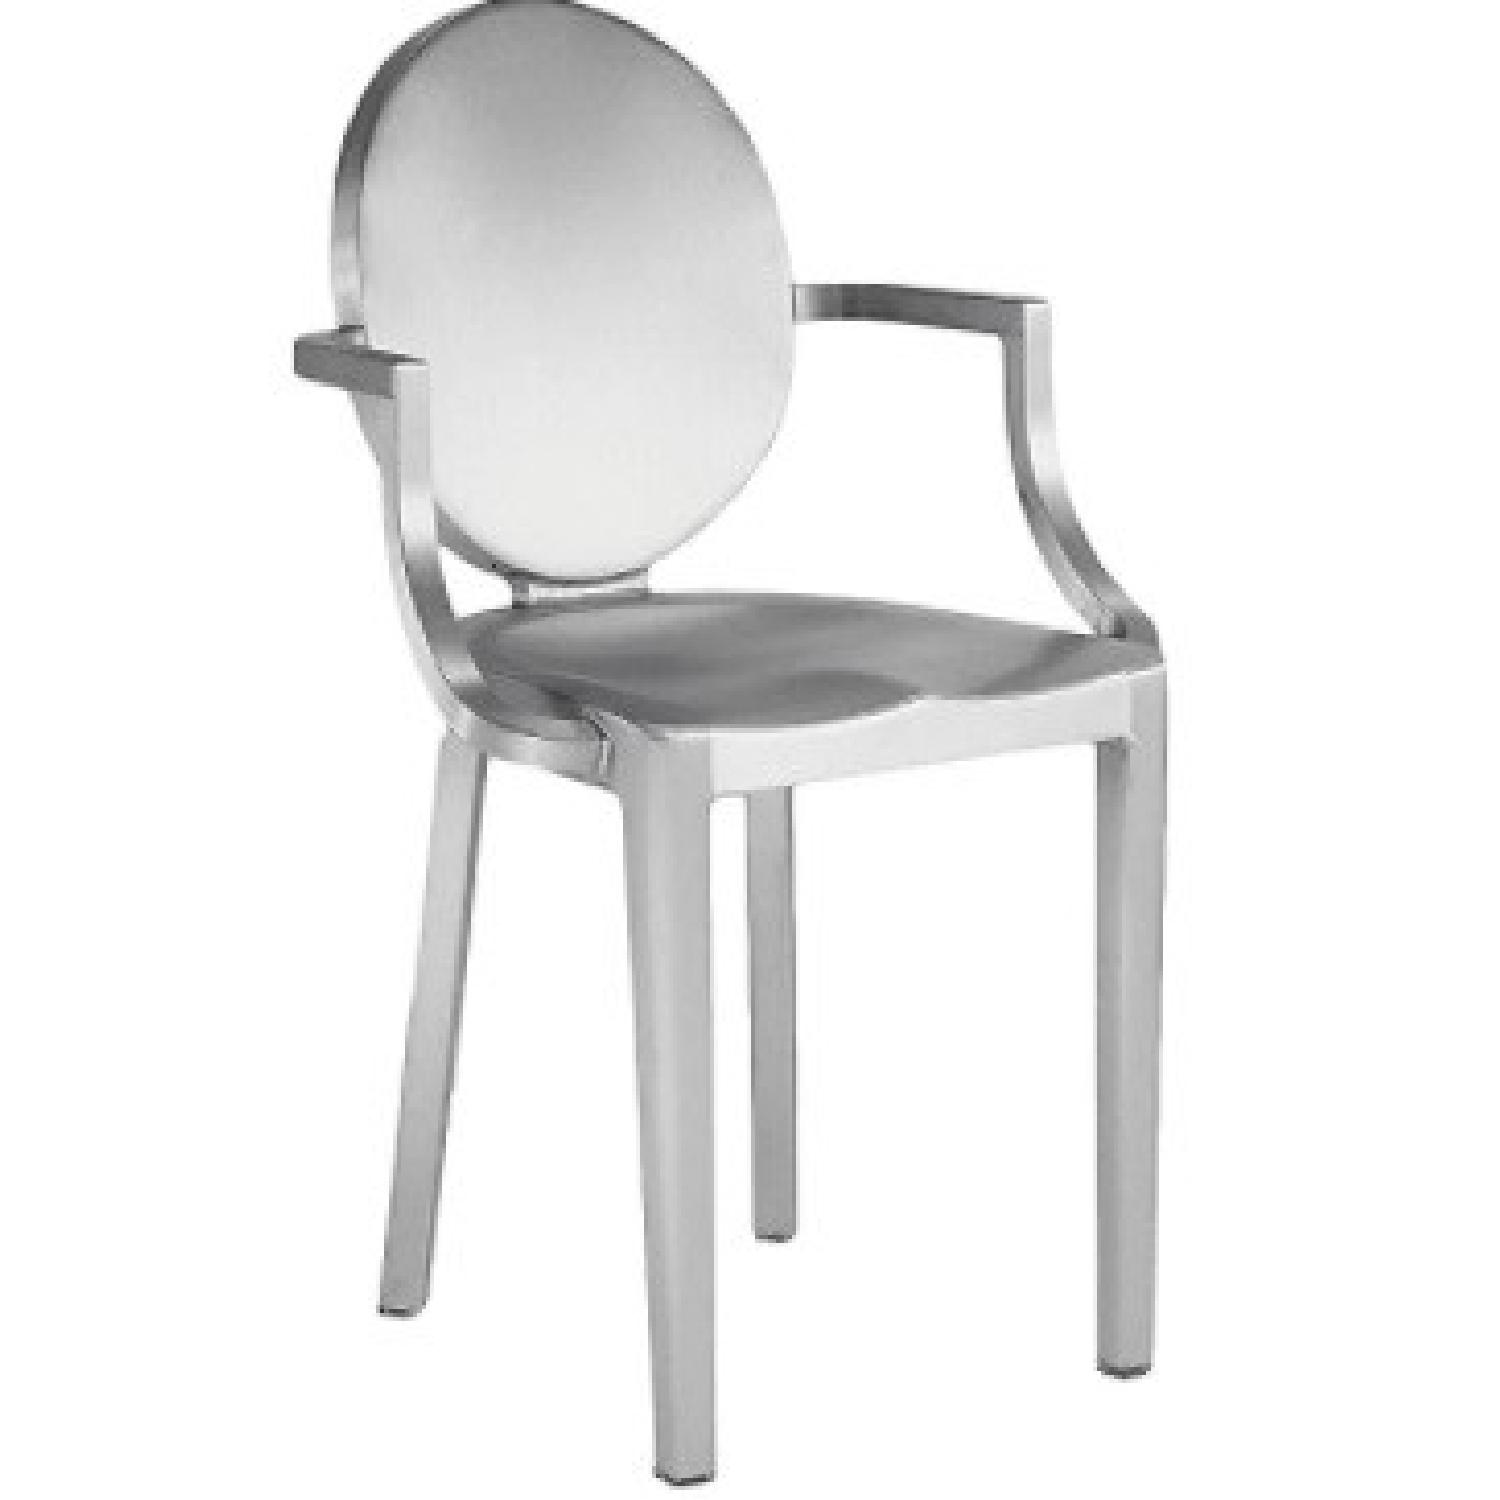 Emeco Kong Chairs set by P. Starck in Brushed Alu - image-11